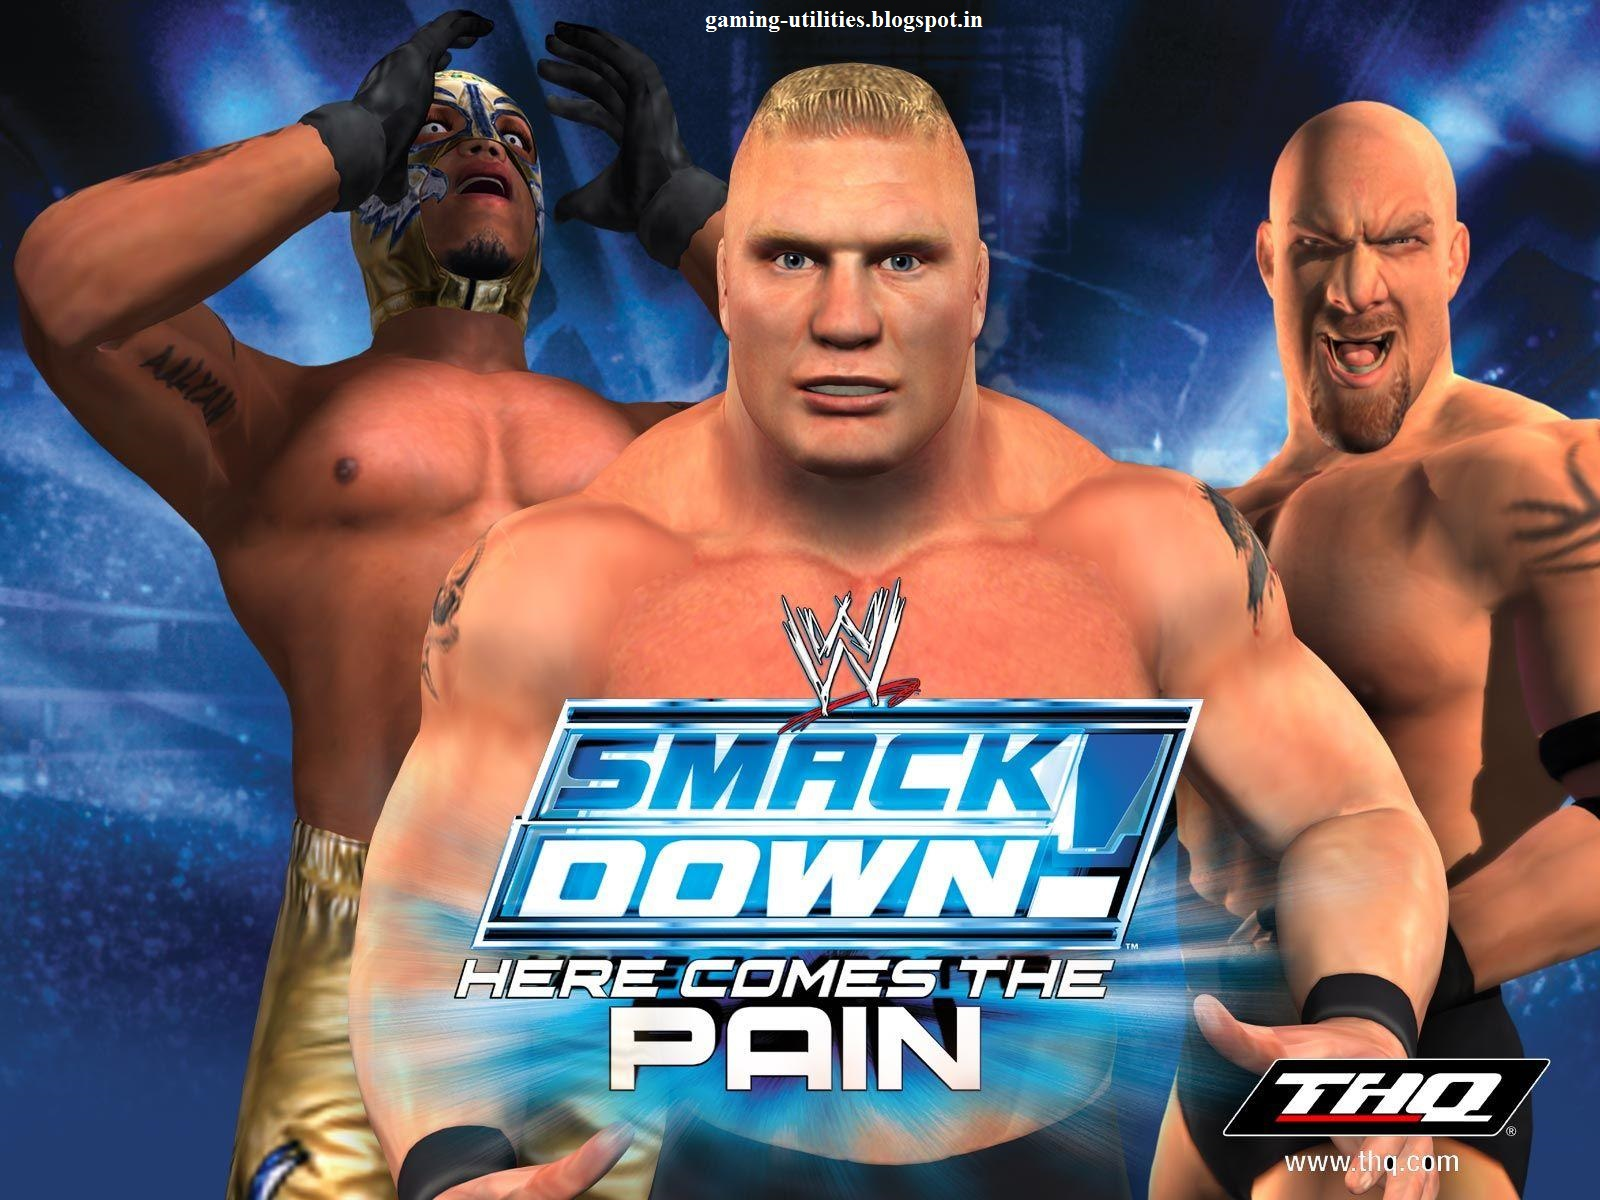 Smack-down-here-comes-the-pain-highly-compressed-download ~ Gaming ...